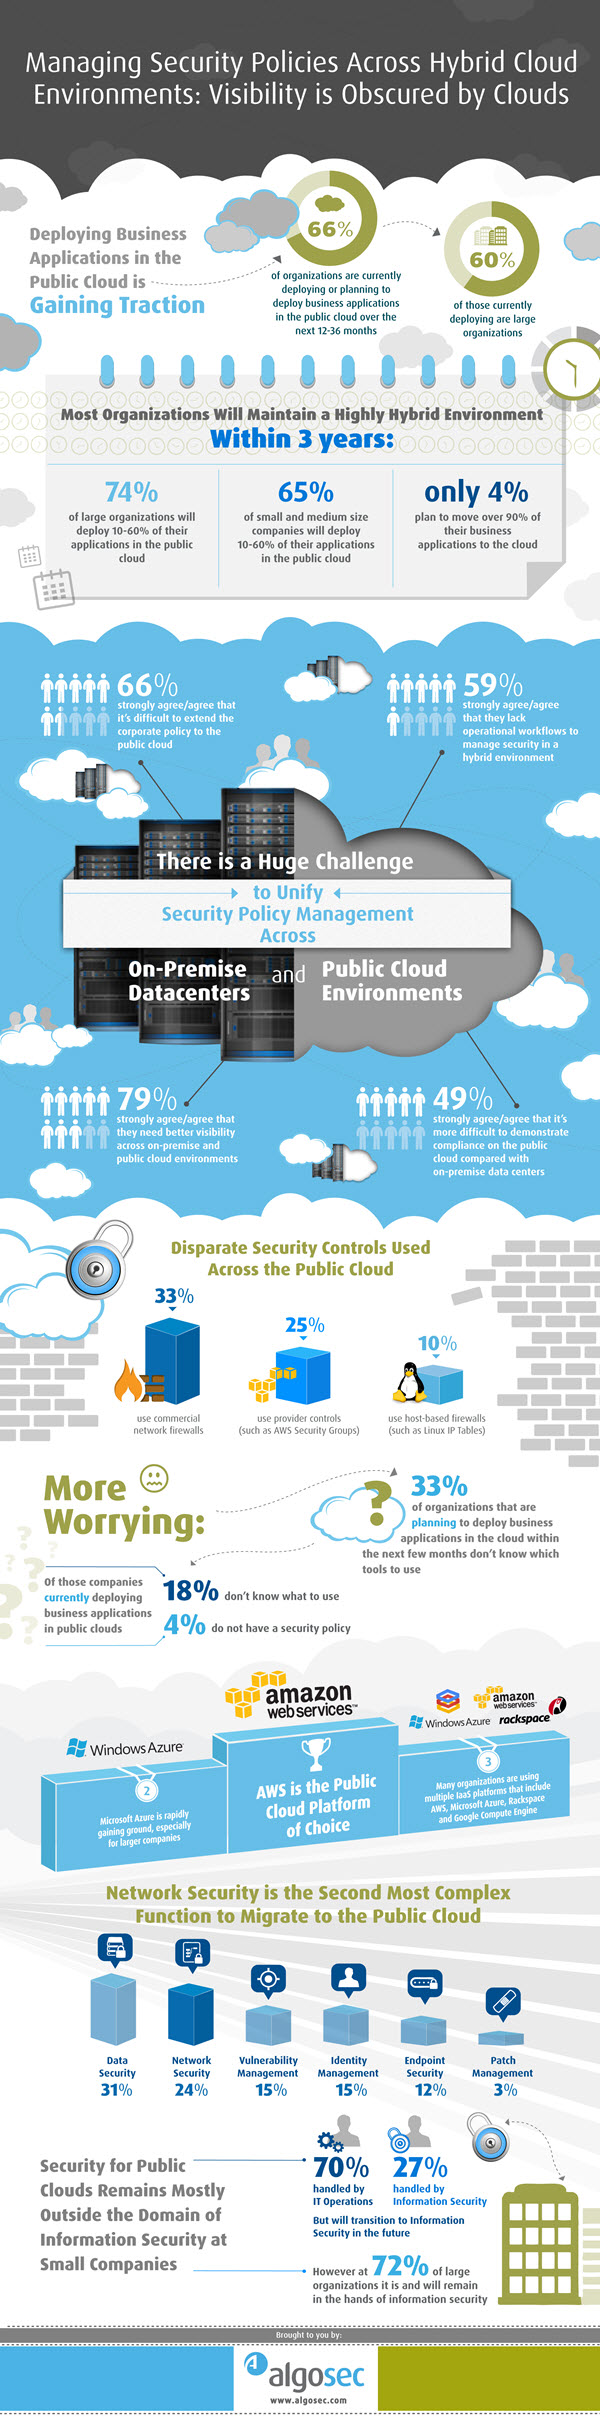 hybrid_cloud_security_infographic-600